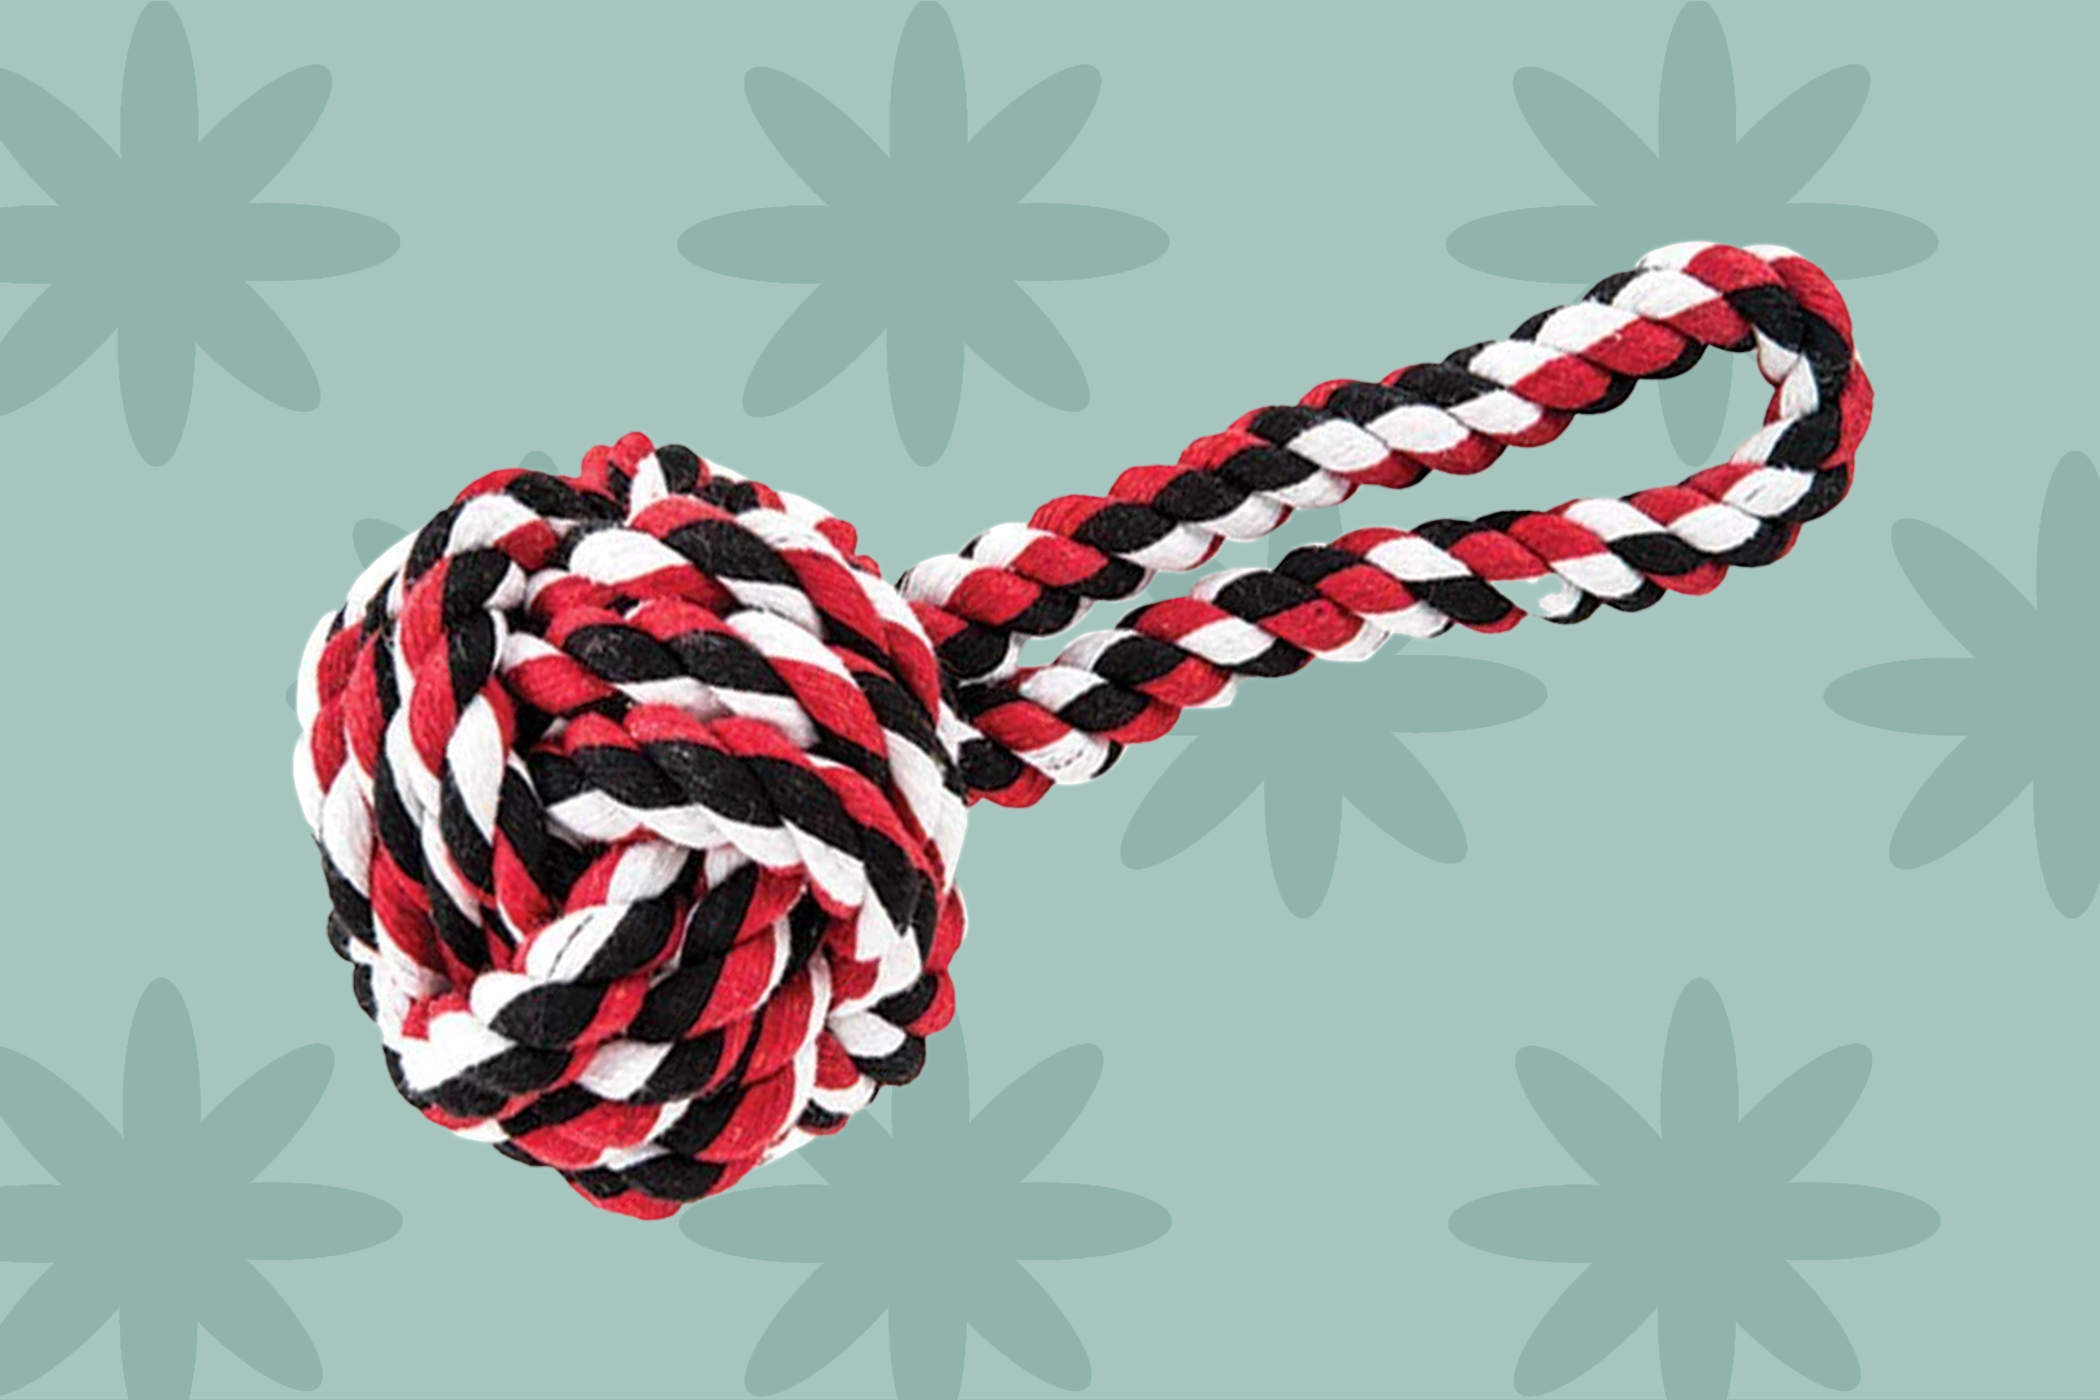 red, black, and white dog toy rope